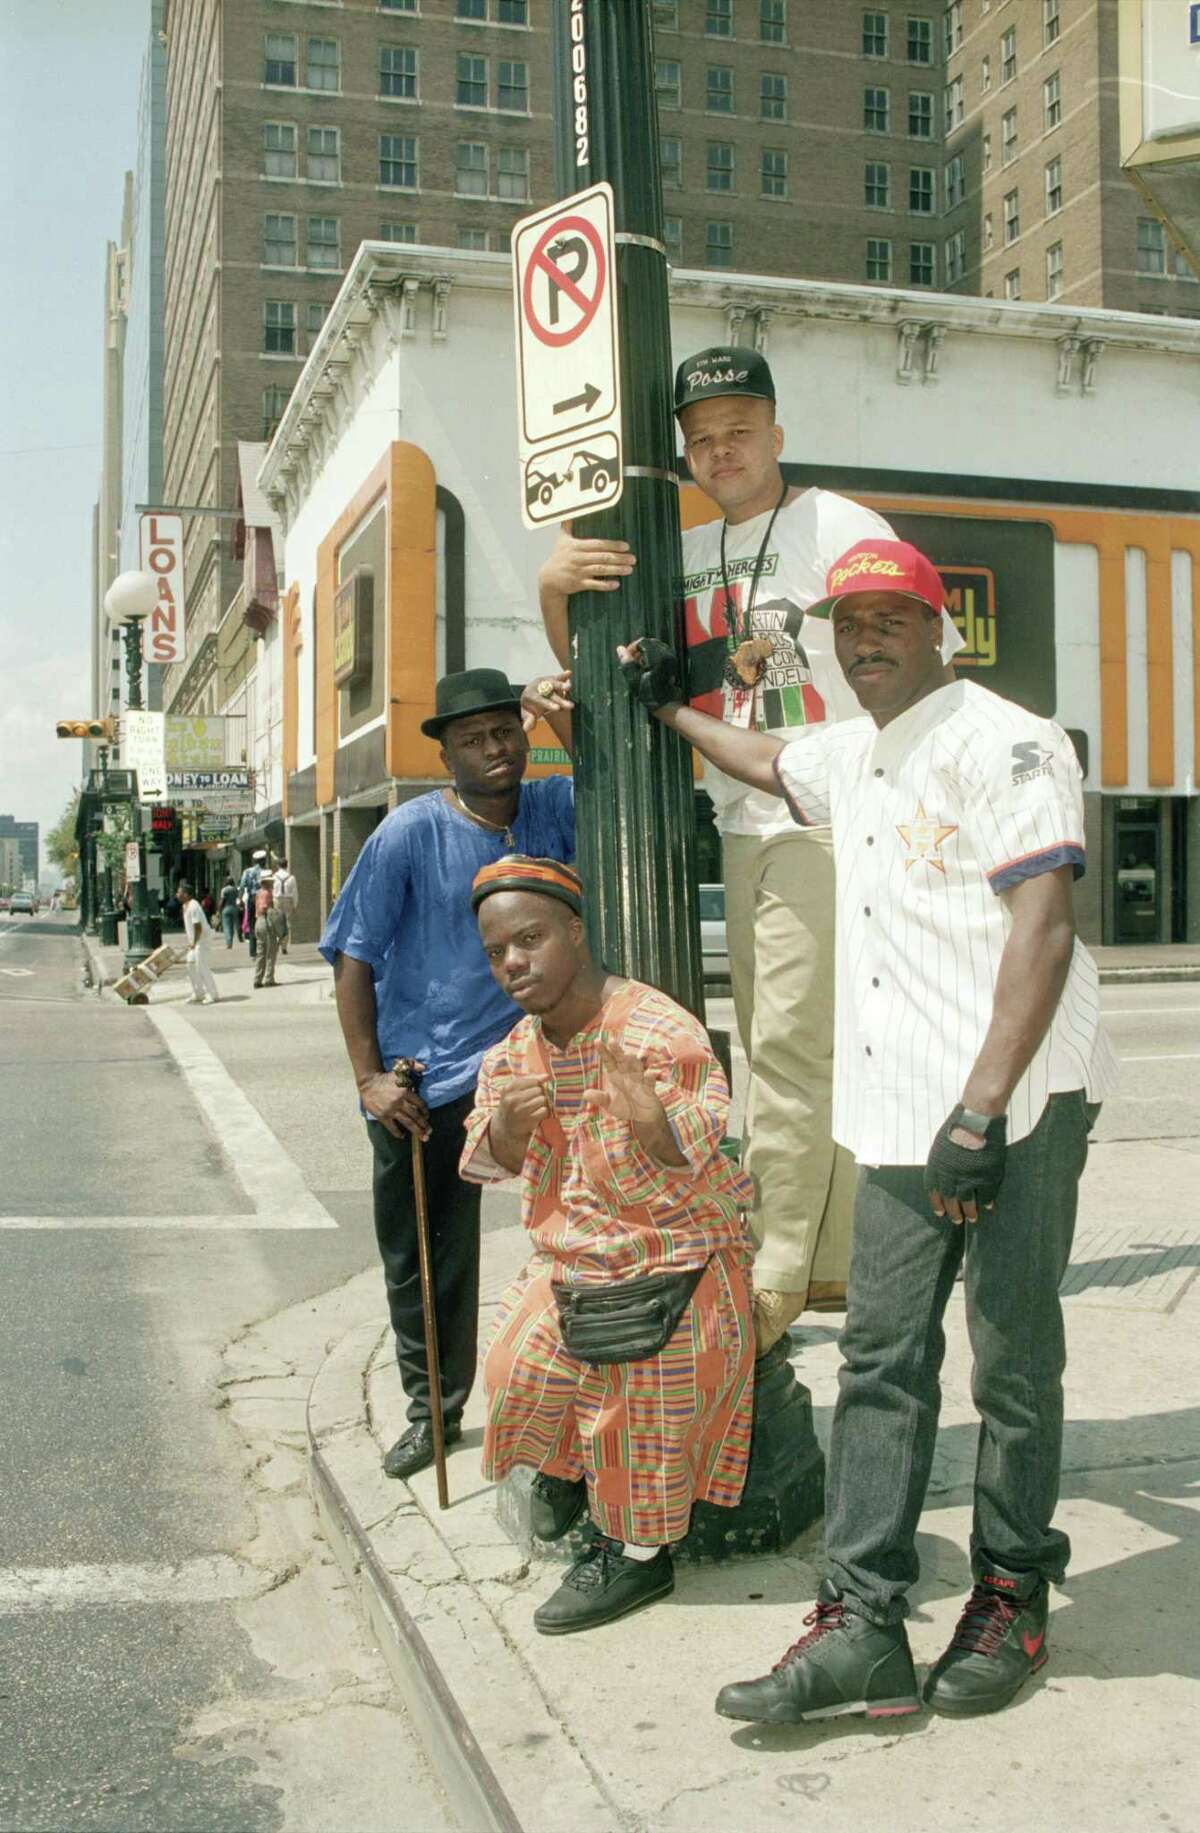 The Geto Boys in 1990. From left, Akshen/Scarface, D.J. Ready Red, Bushwick, and Willie D.